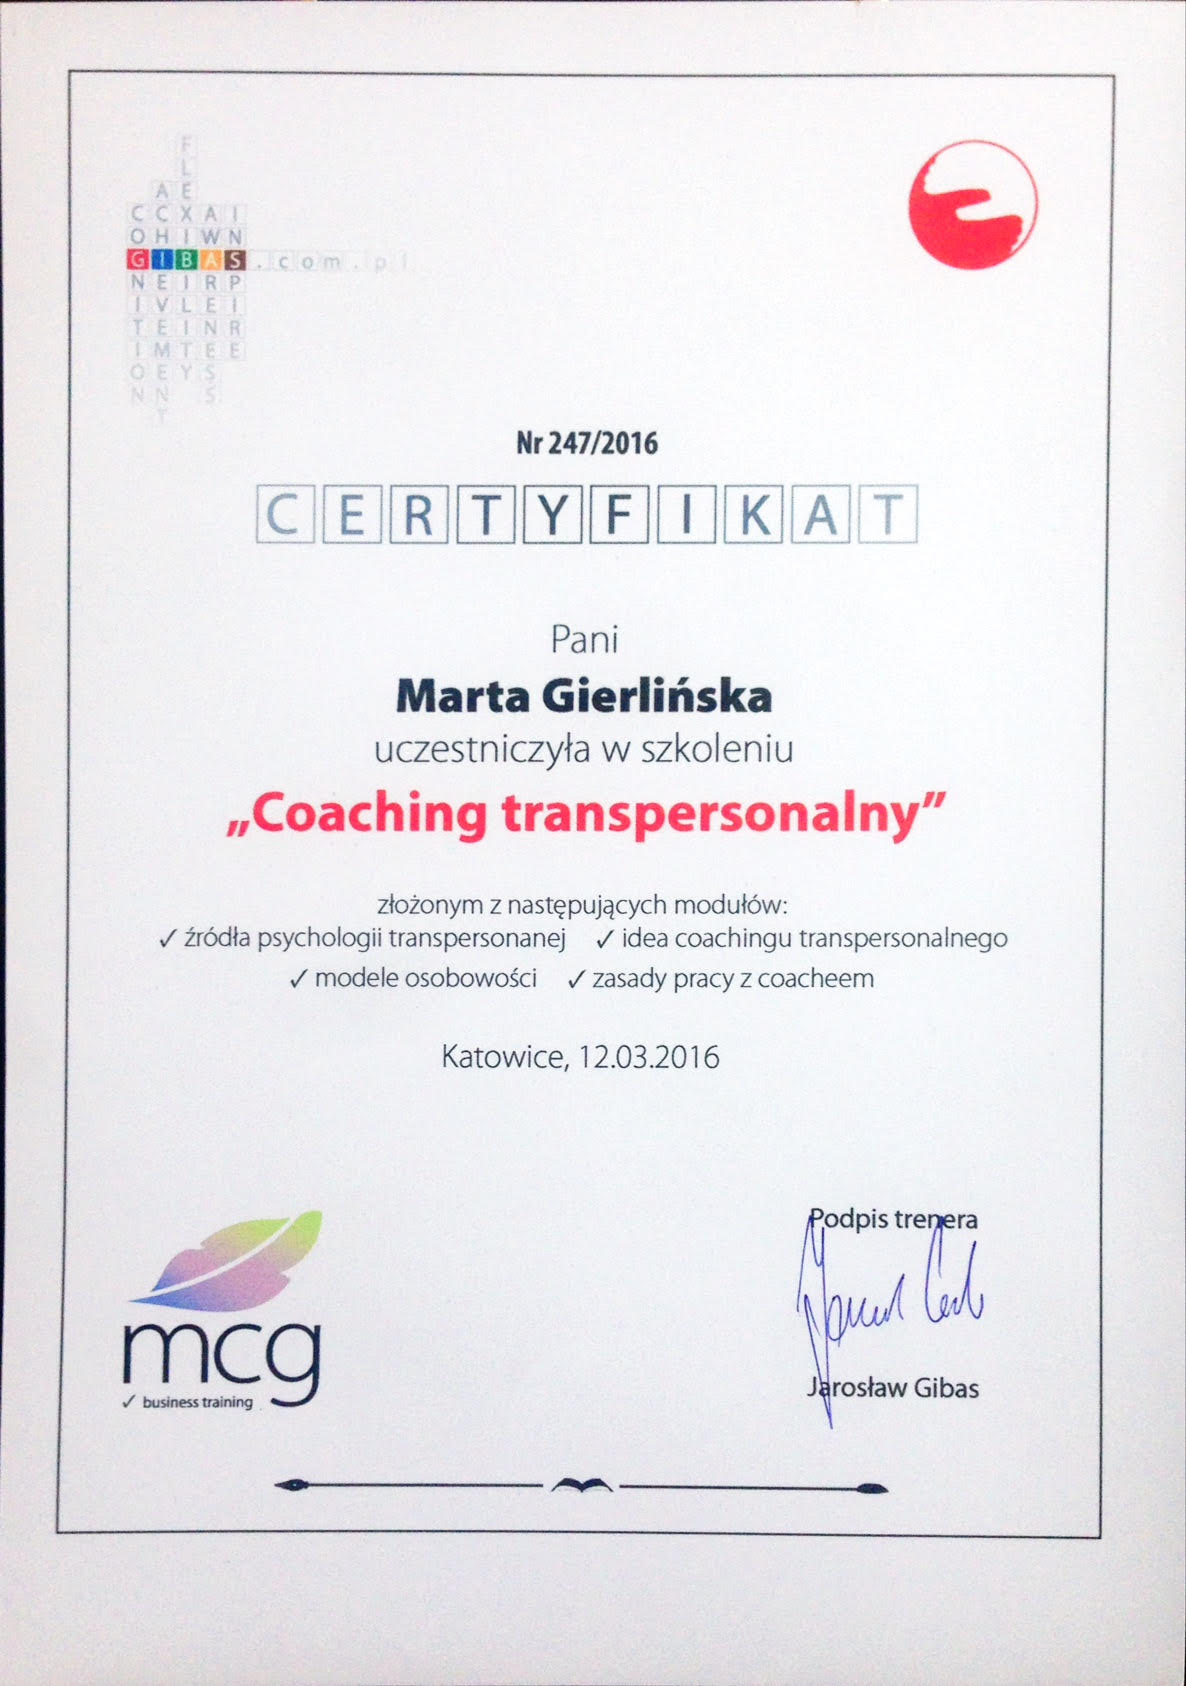 Coaching Transpersonalny